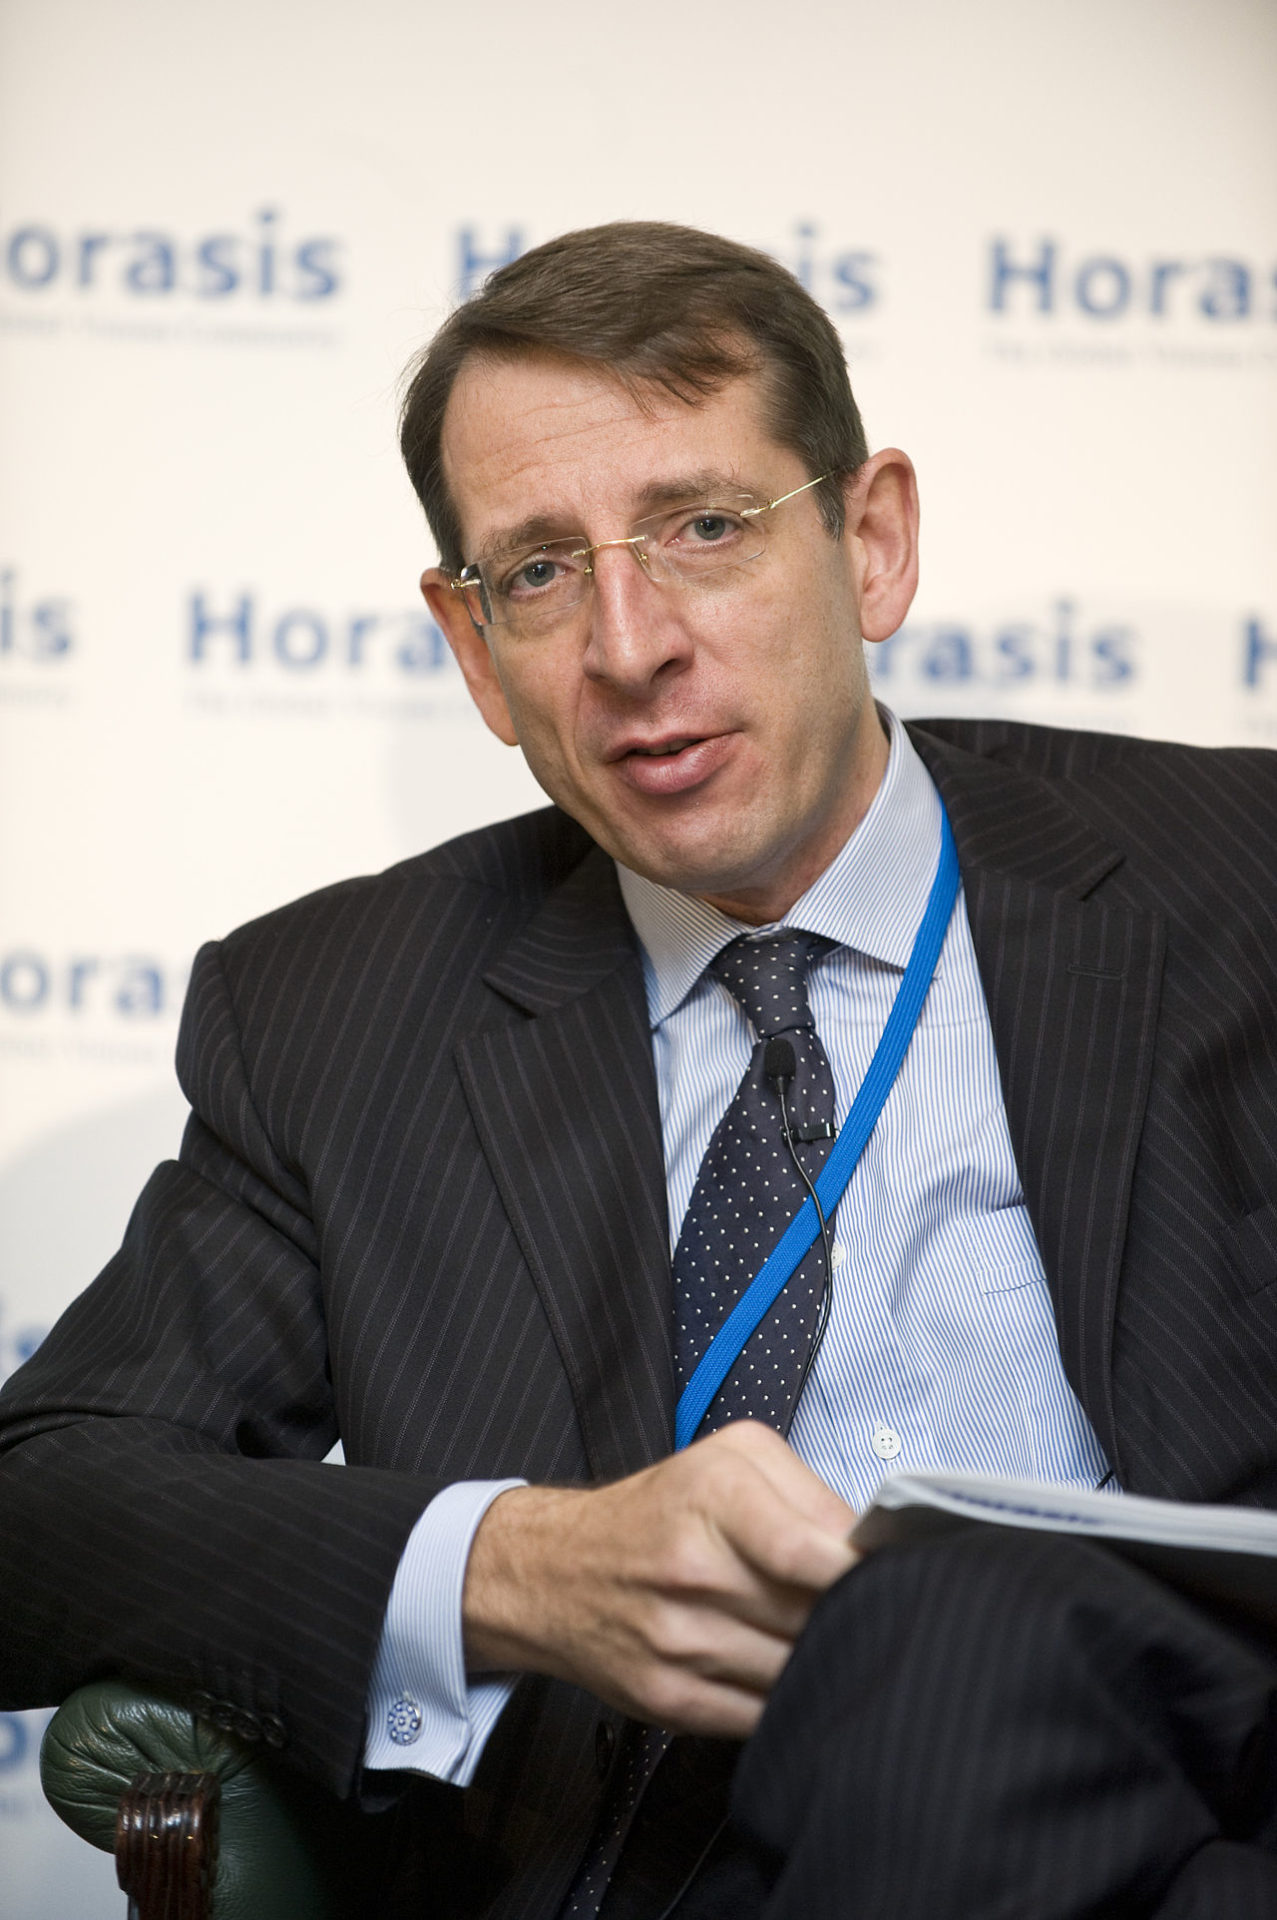 Frank-Jürgen Richter, chairman of Horasis (Photo courtesy of Wikipedia)